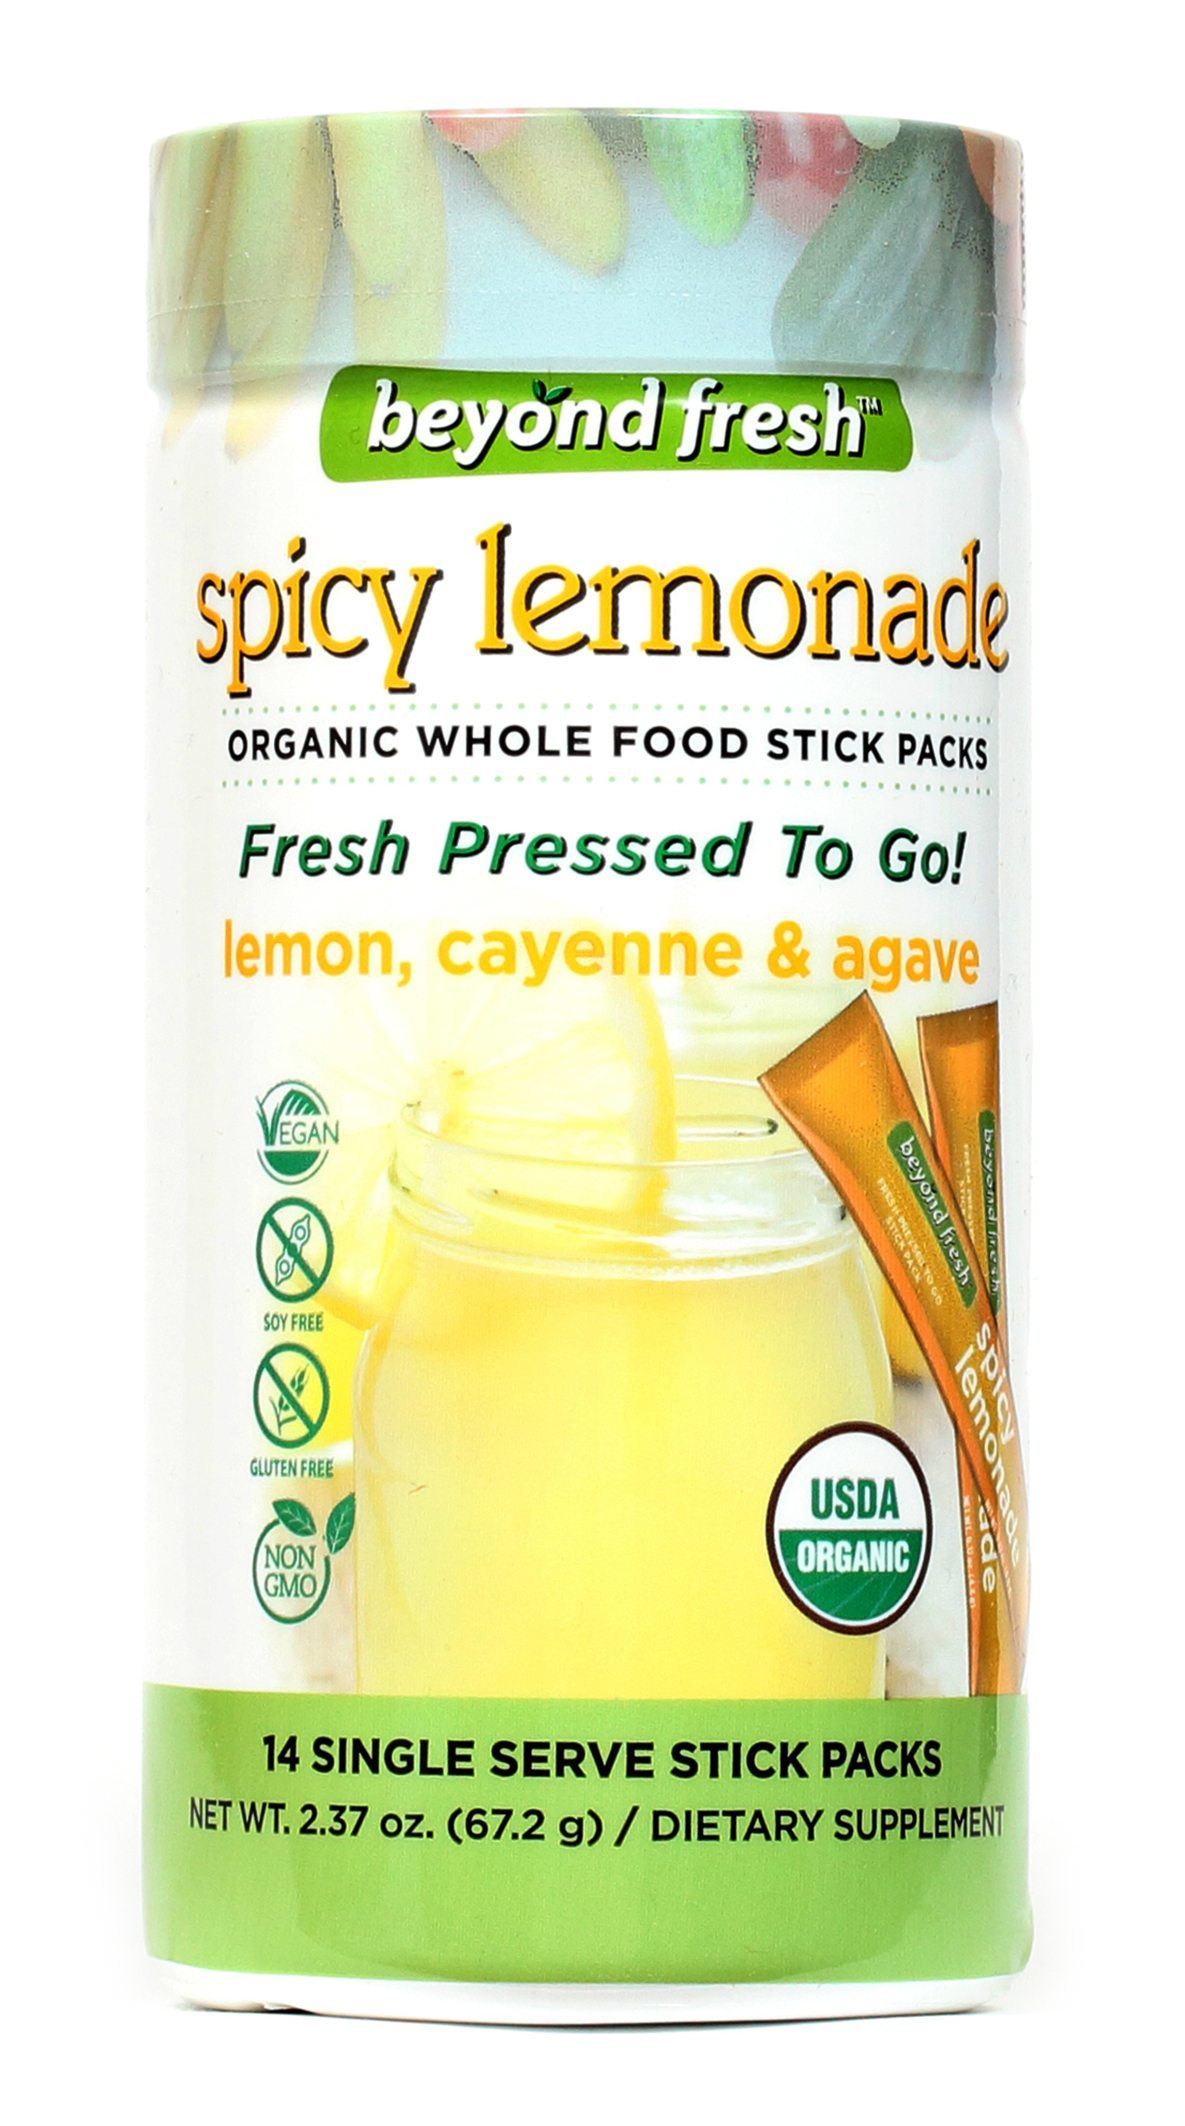 Image of Spicy Lemonade-Superfood Stick Packs